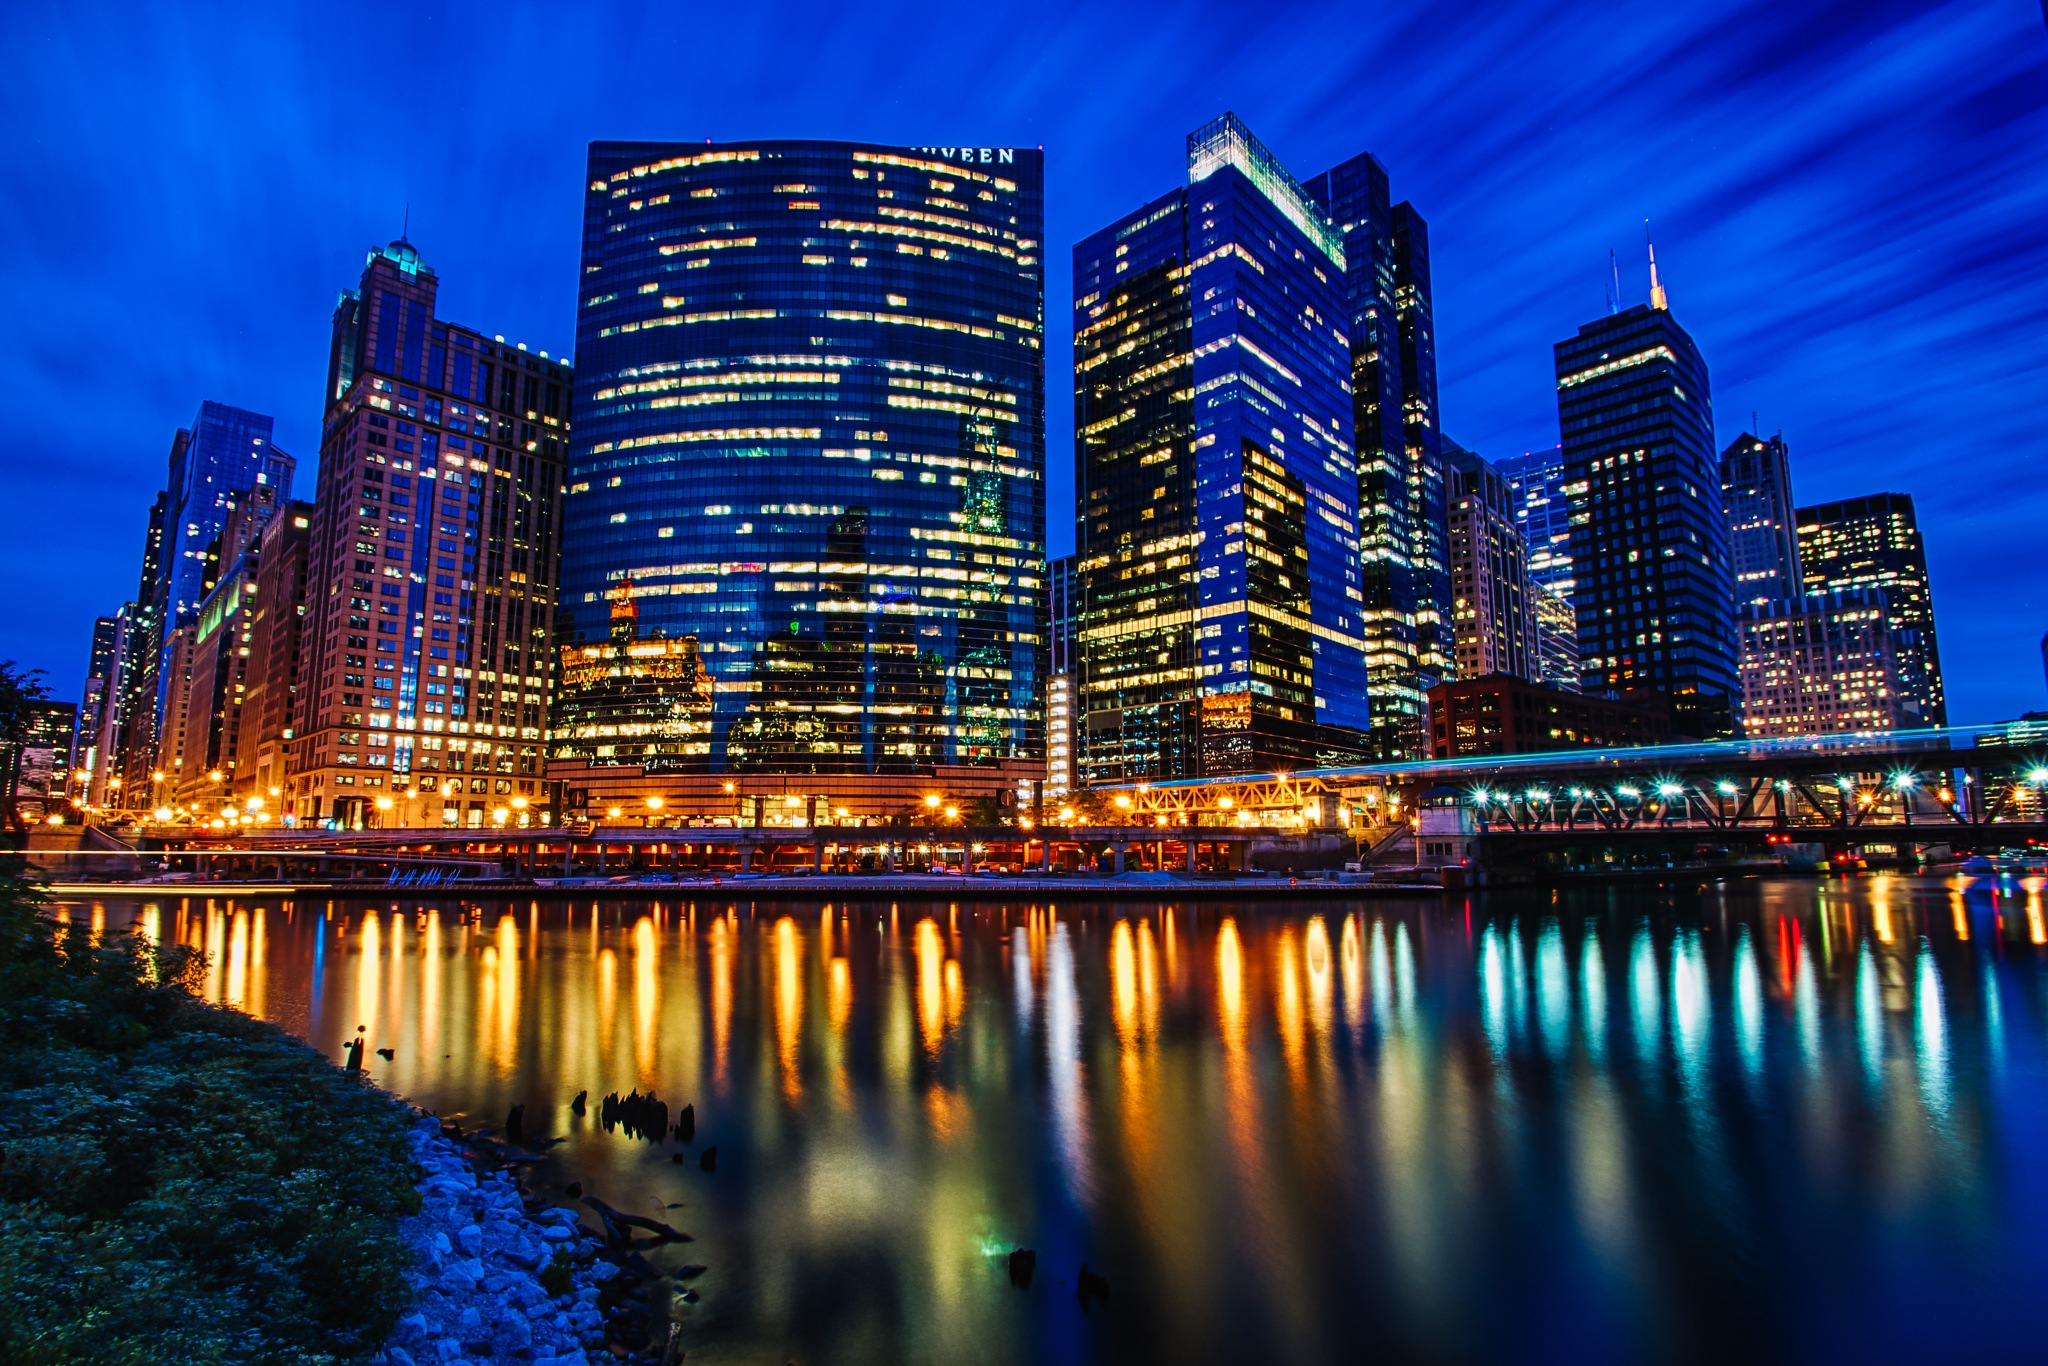 Night brilliance at Wolf Point by Raf Winterpacht